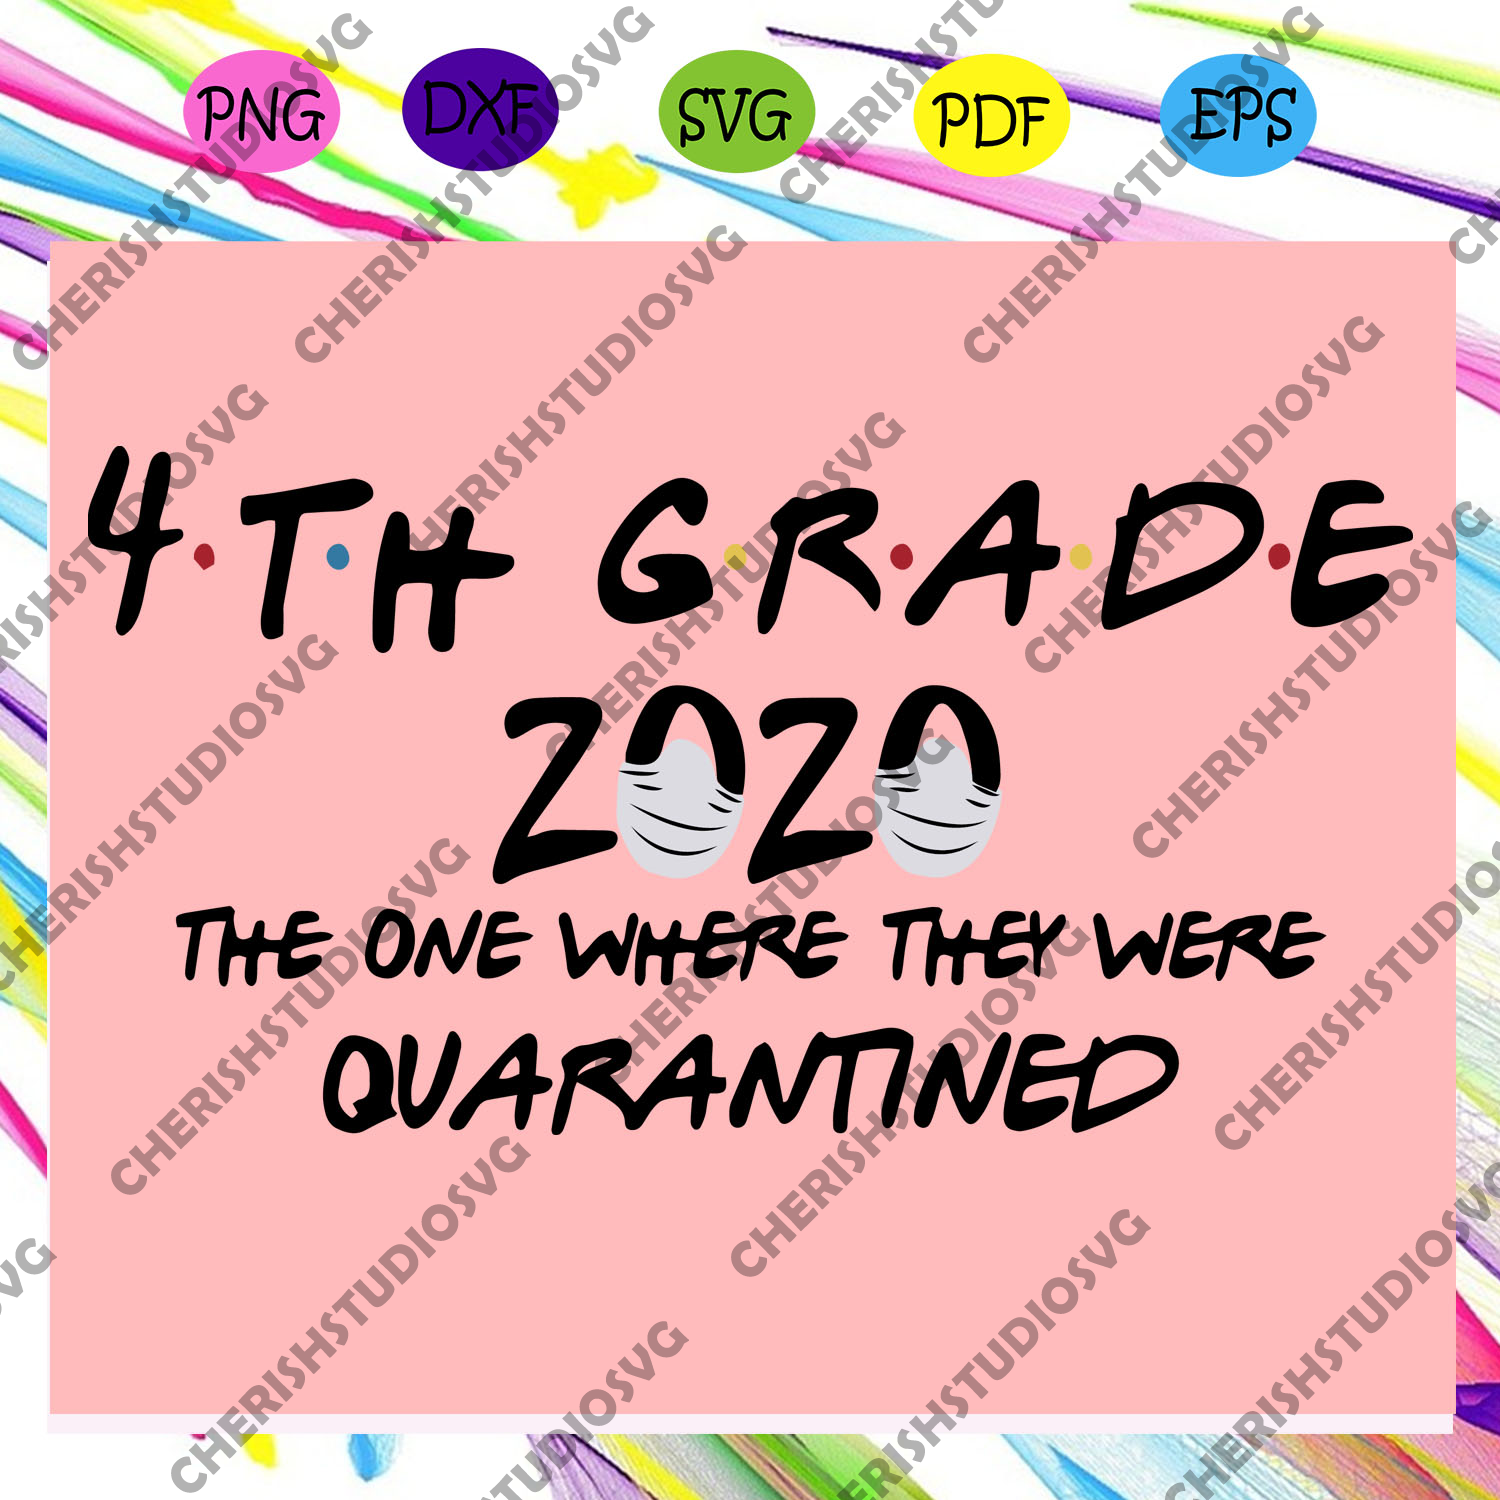 4th grade 2020 the one where they were quarantined, 4th grade 2020 svg, quarantine svg, social distance svg, teacher svg, 4th grade quarantined student, quarantined teacher, Files For Silhouette, Files For Cricut, SVG, DXF, EPS, PNG, Instant Download